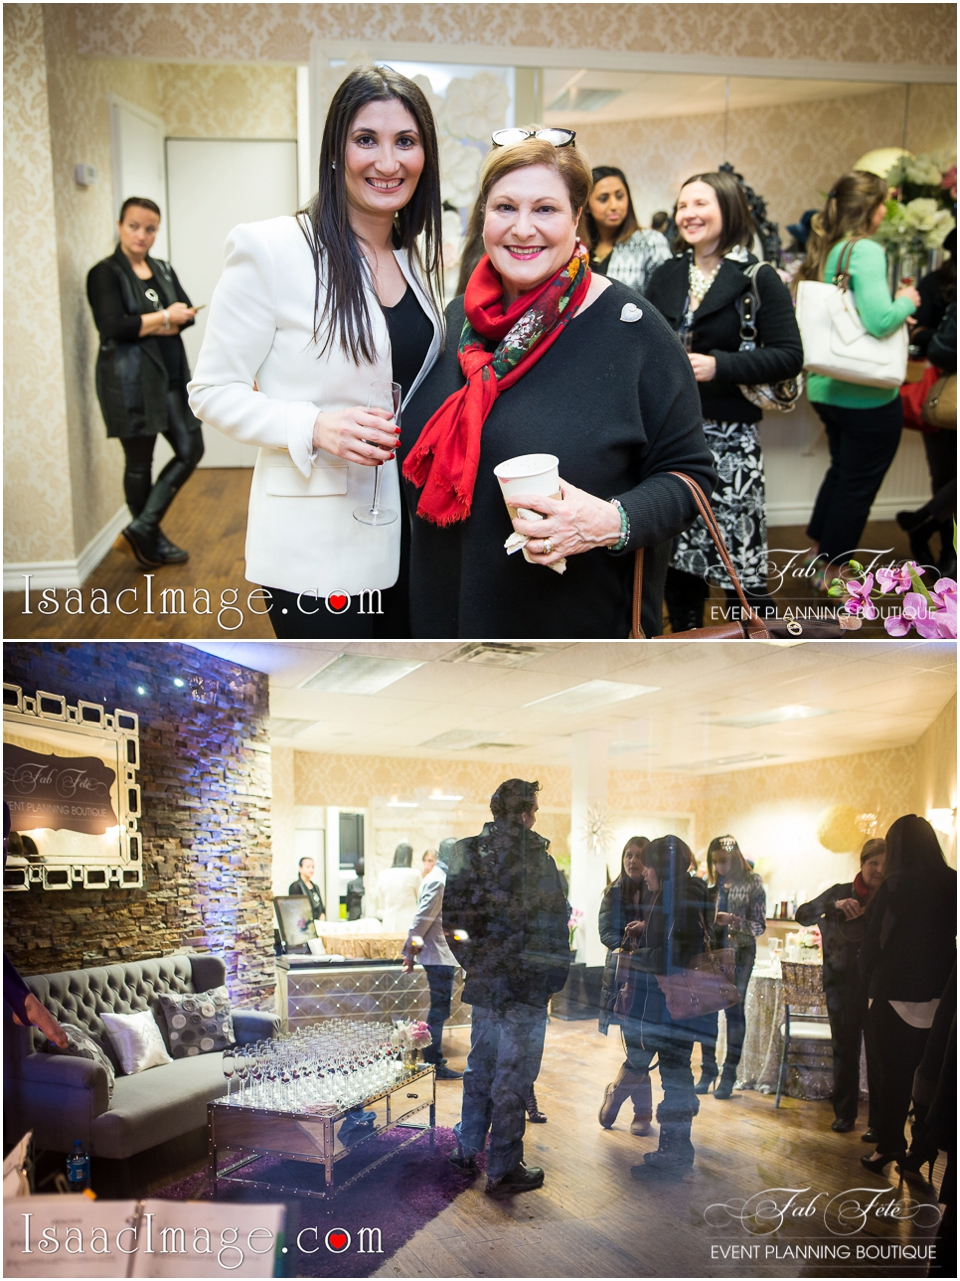 Fab Fete Toronto Wedding Event Planning Boutique open house_6474.jpg